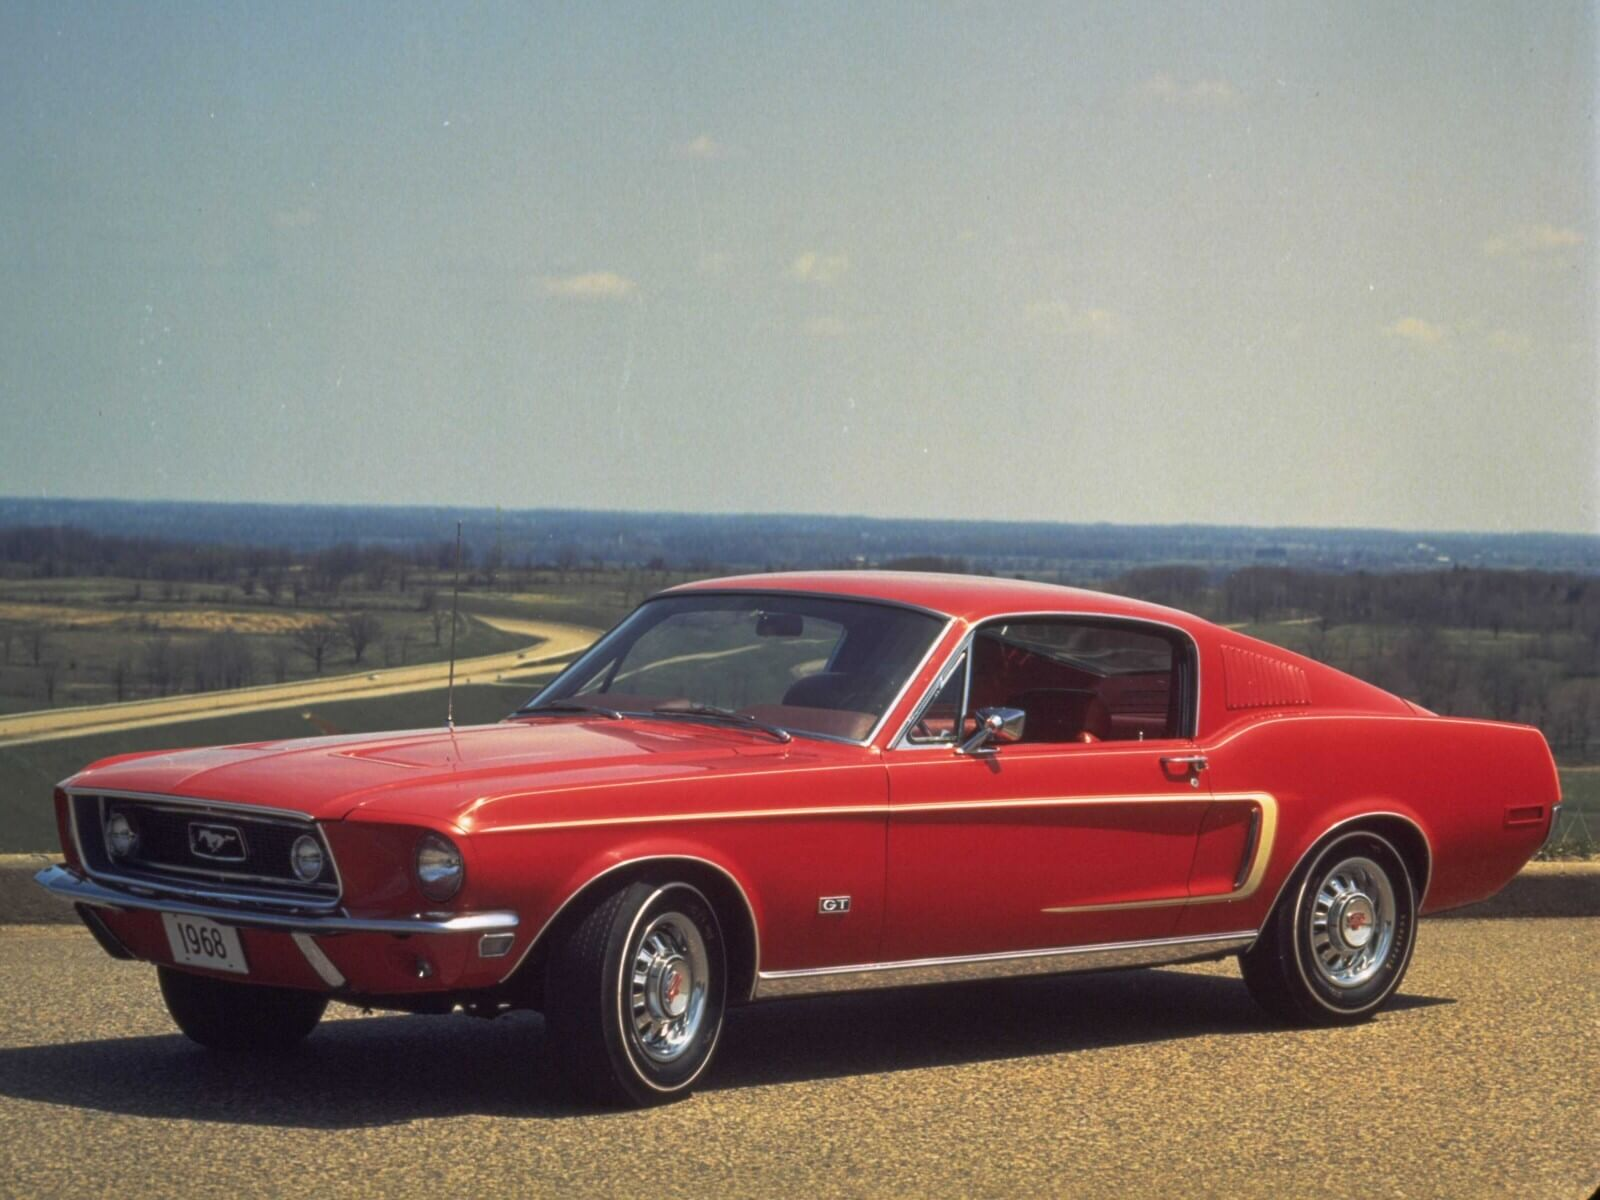 history of the ford mustang Information on the 1965 mustang including photos, wallpapers, publicity ads, engine info, available colors, and more.